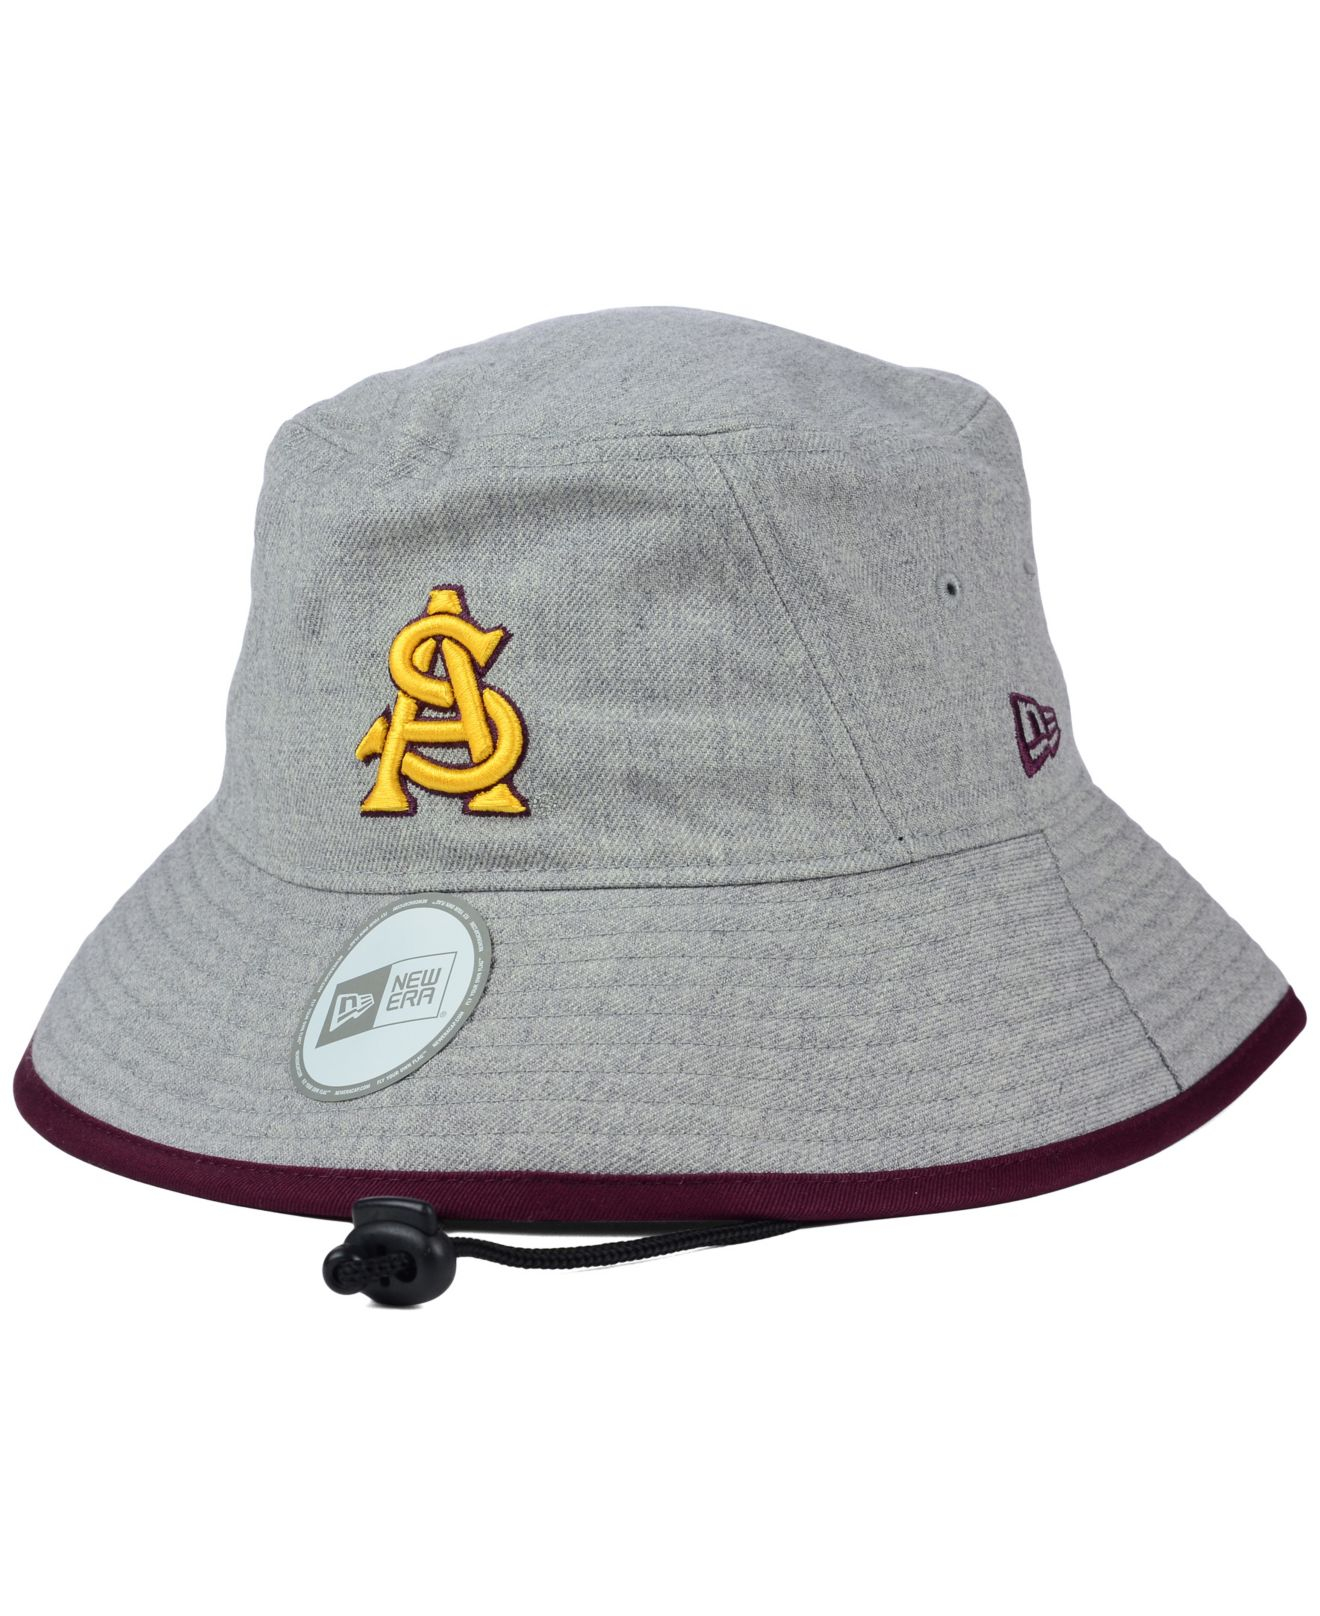 save off 88df7 4a155 ... reduced lyst ktz arizona state sun devils tip bucket hat in gray f4122  25db8